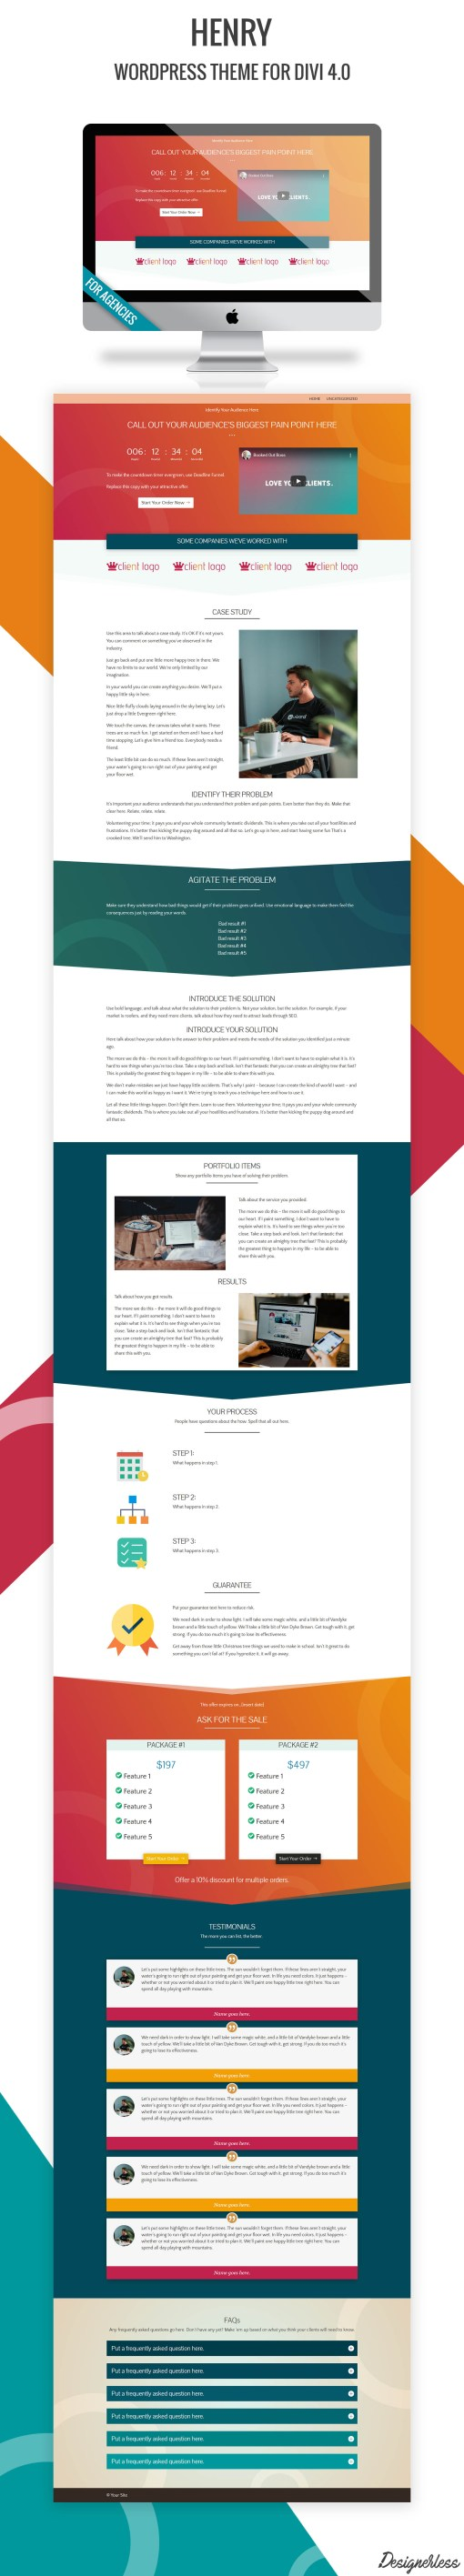 Henry - WordPress Theme Preview